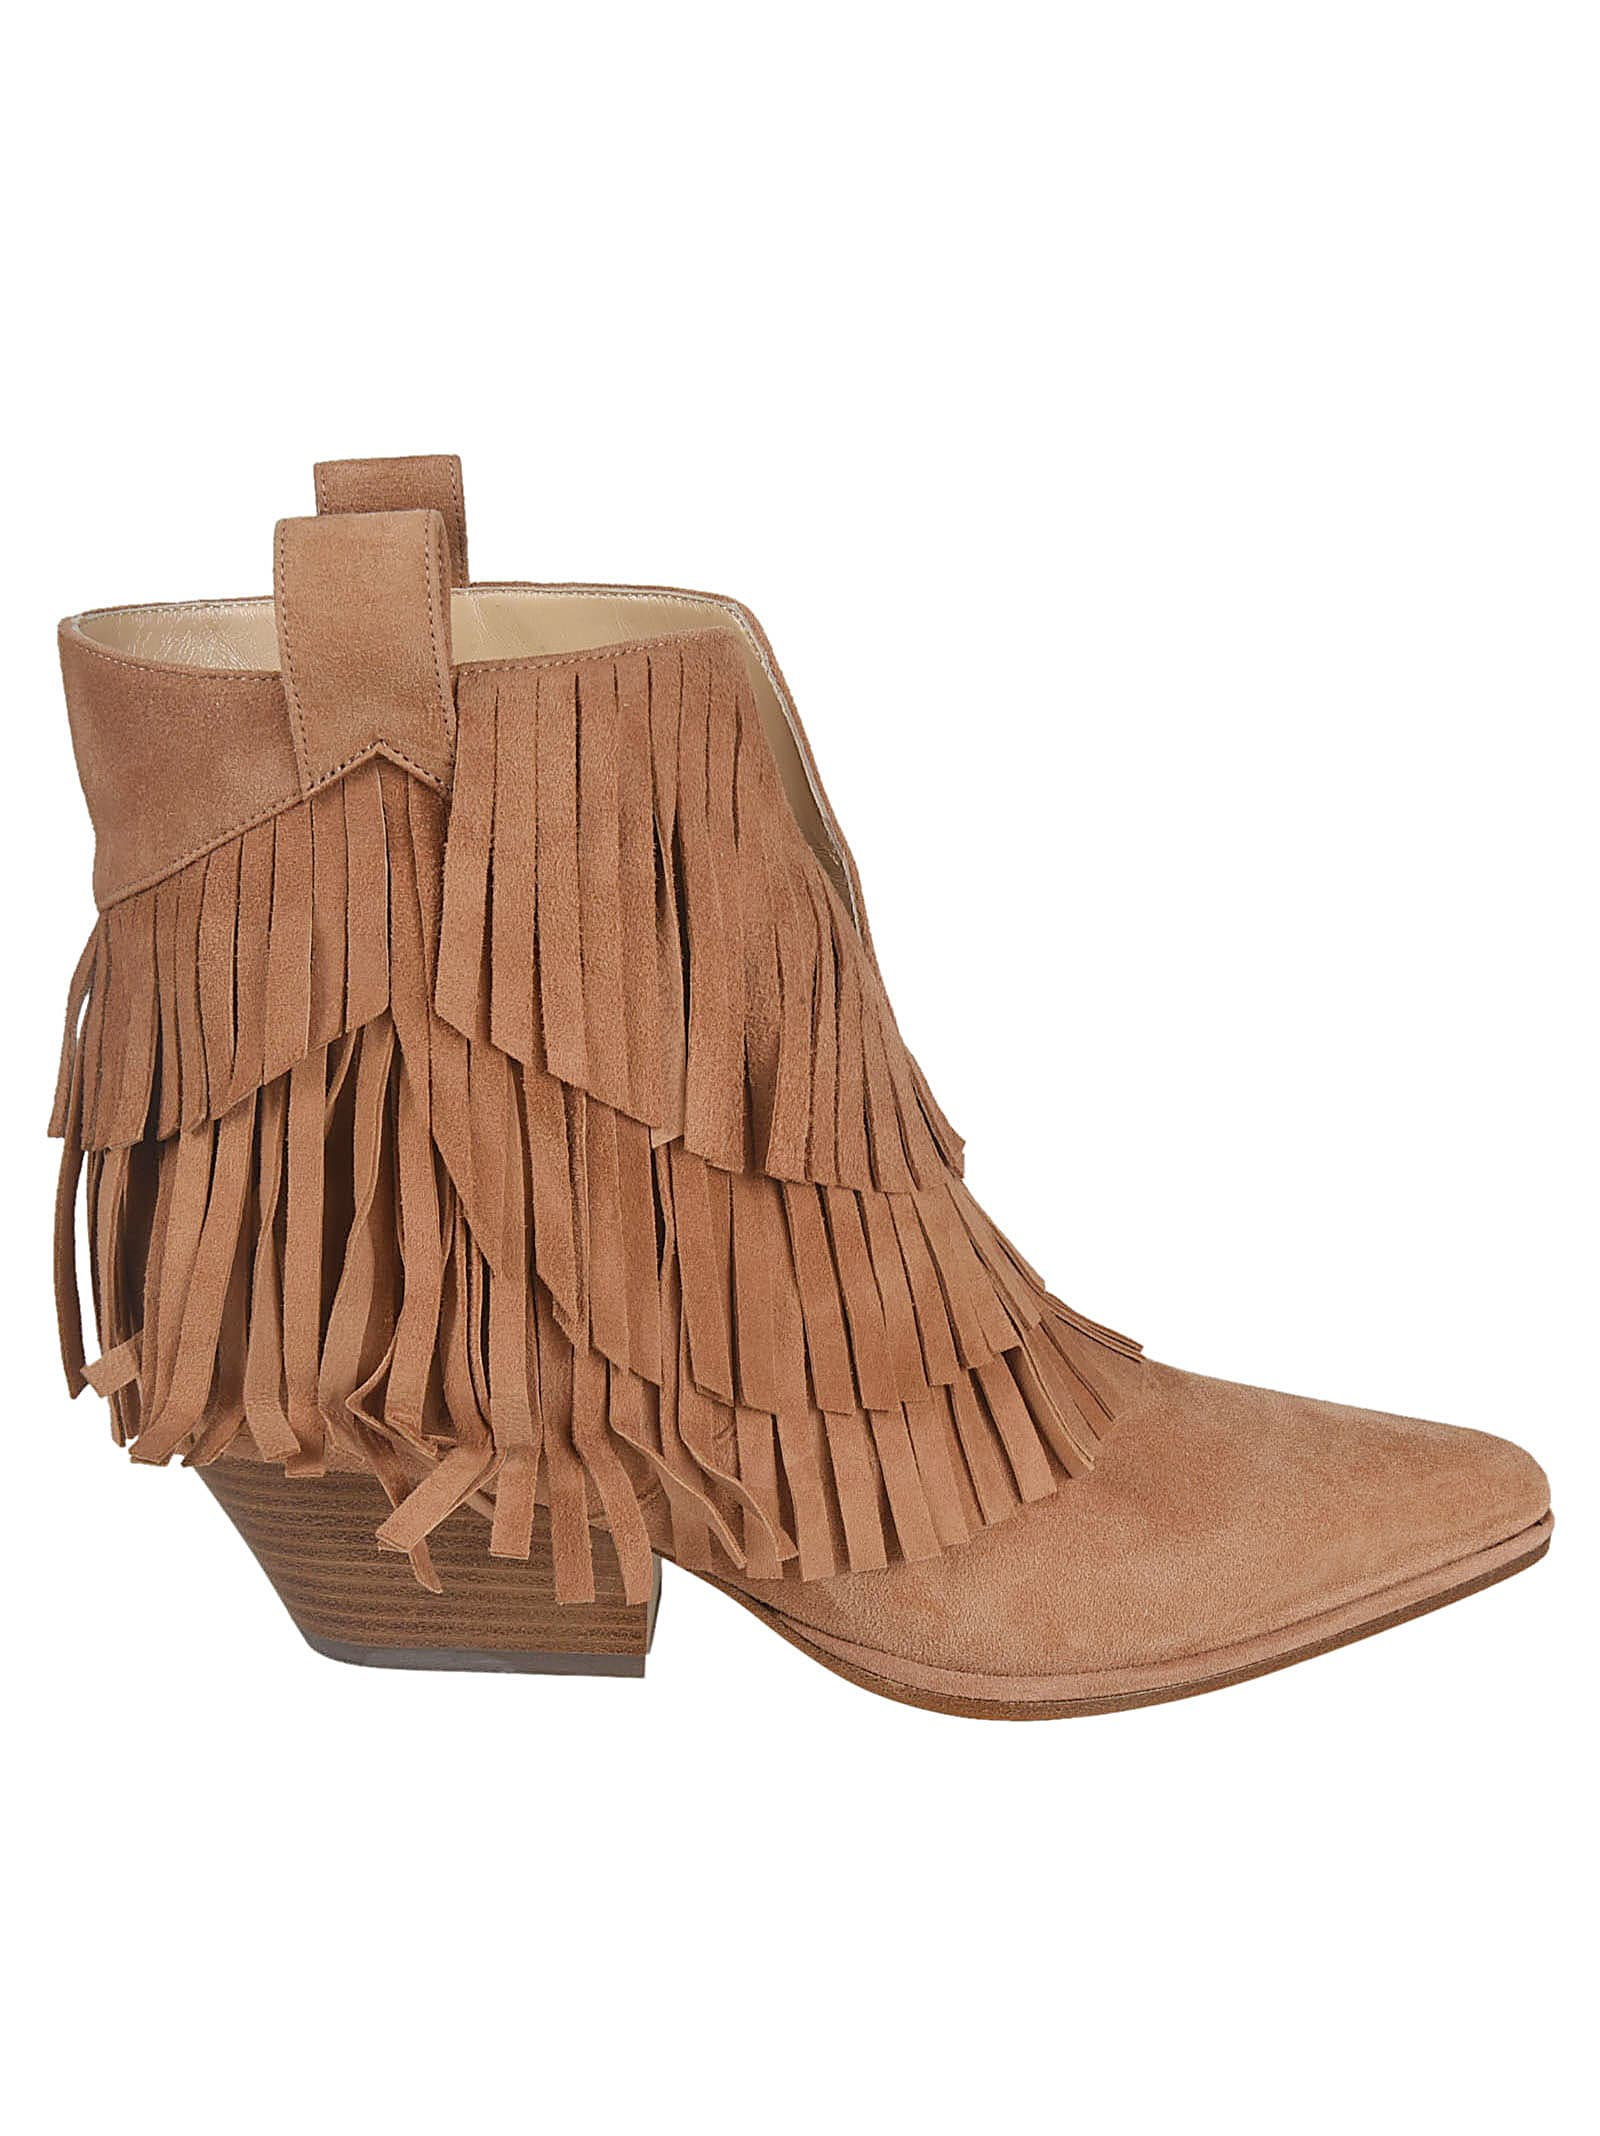 Buy Sergio Rossi Carla Boots online, shop Sergio Rossi shoes with free shipping